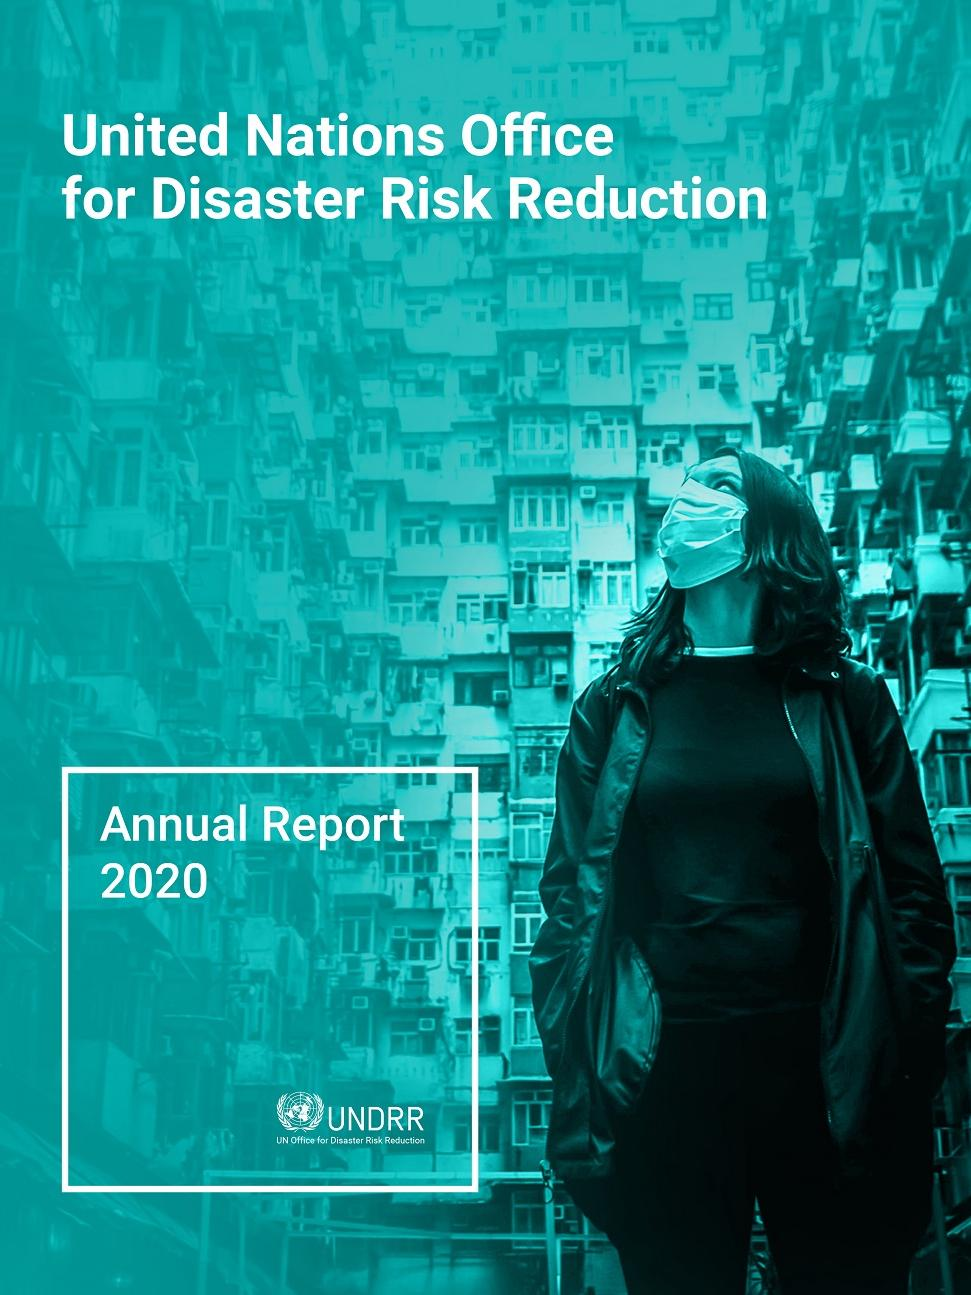 Cover image of the annual report 2020